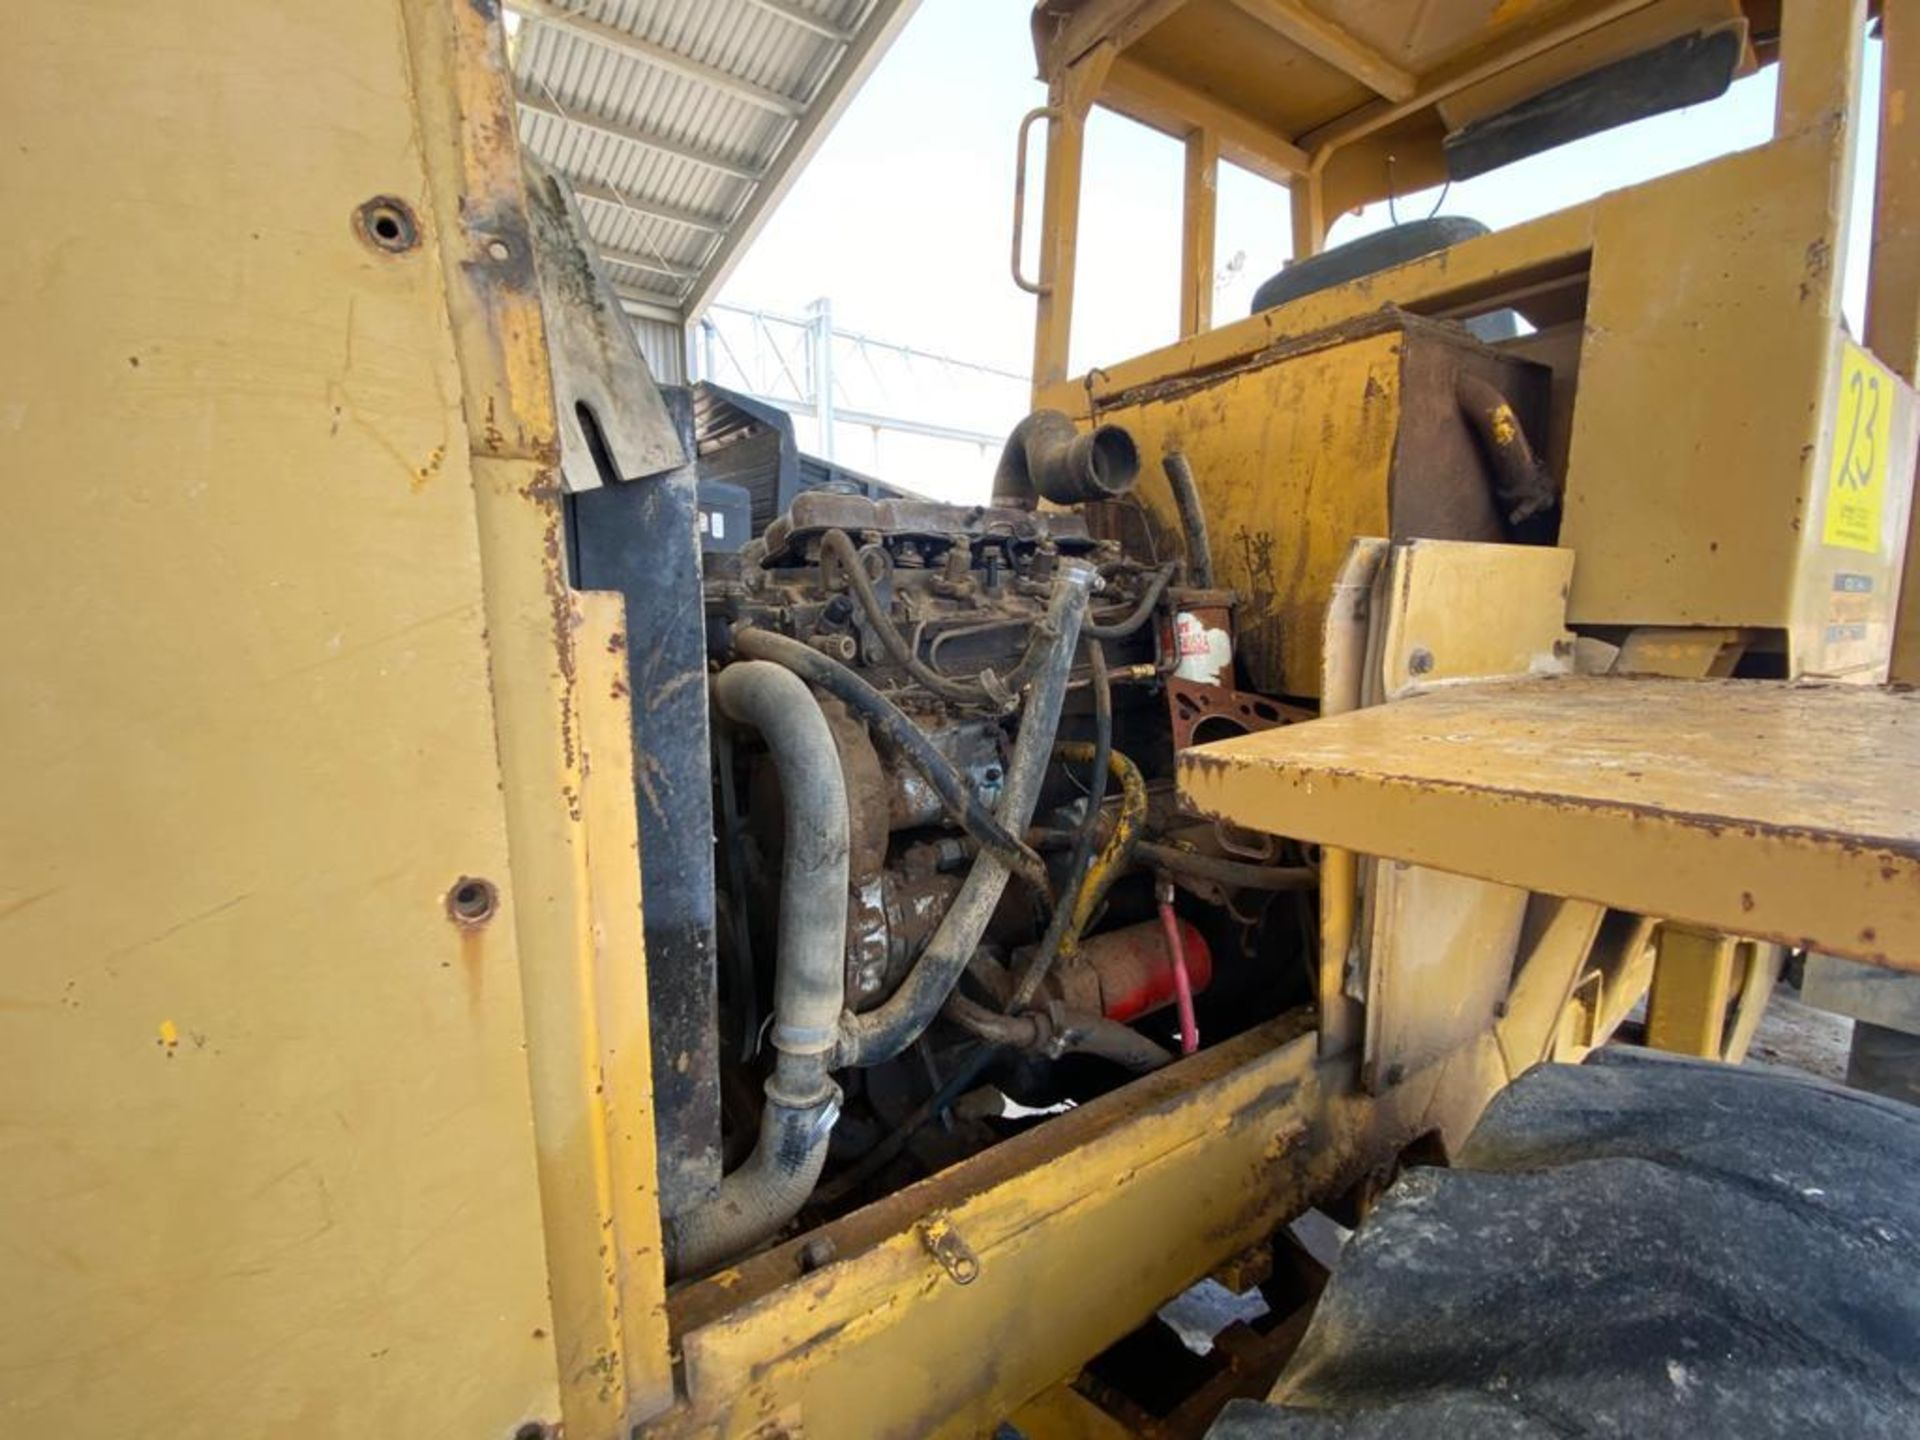 Volvo BM TYPE L 30 Michigan Front Loder, automatic transmission - Image 40 of 53